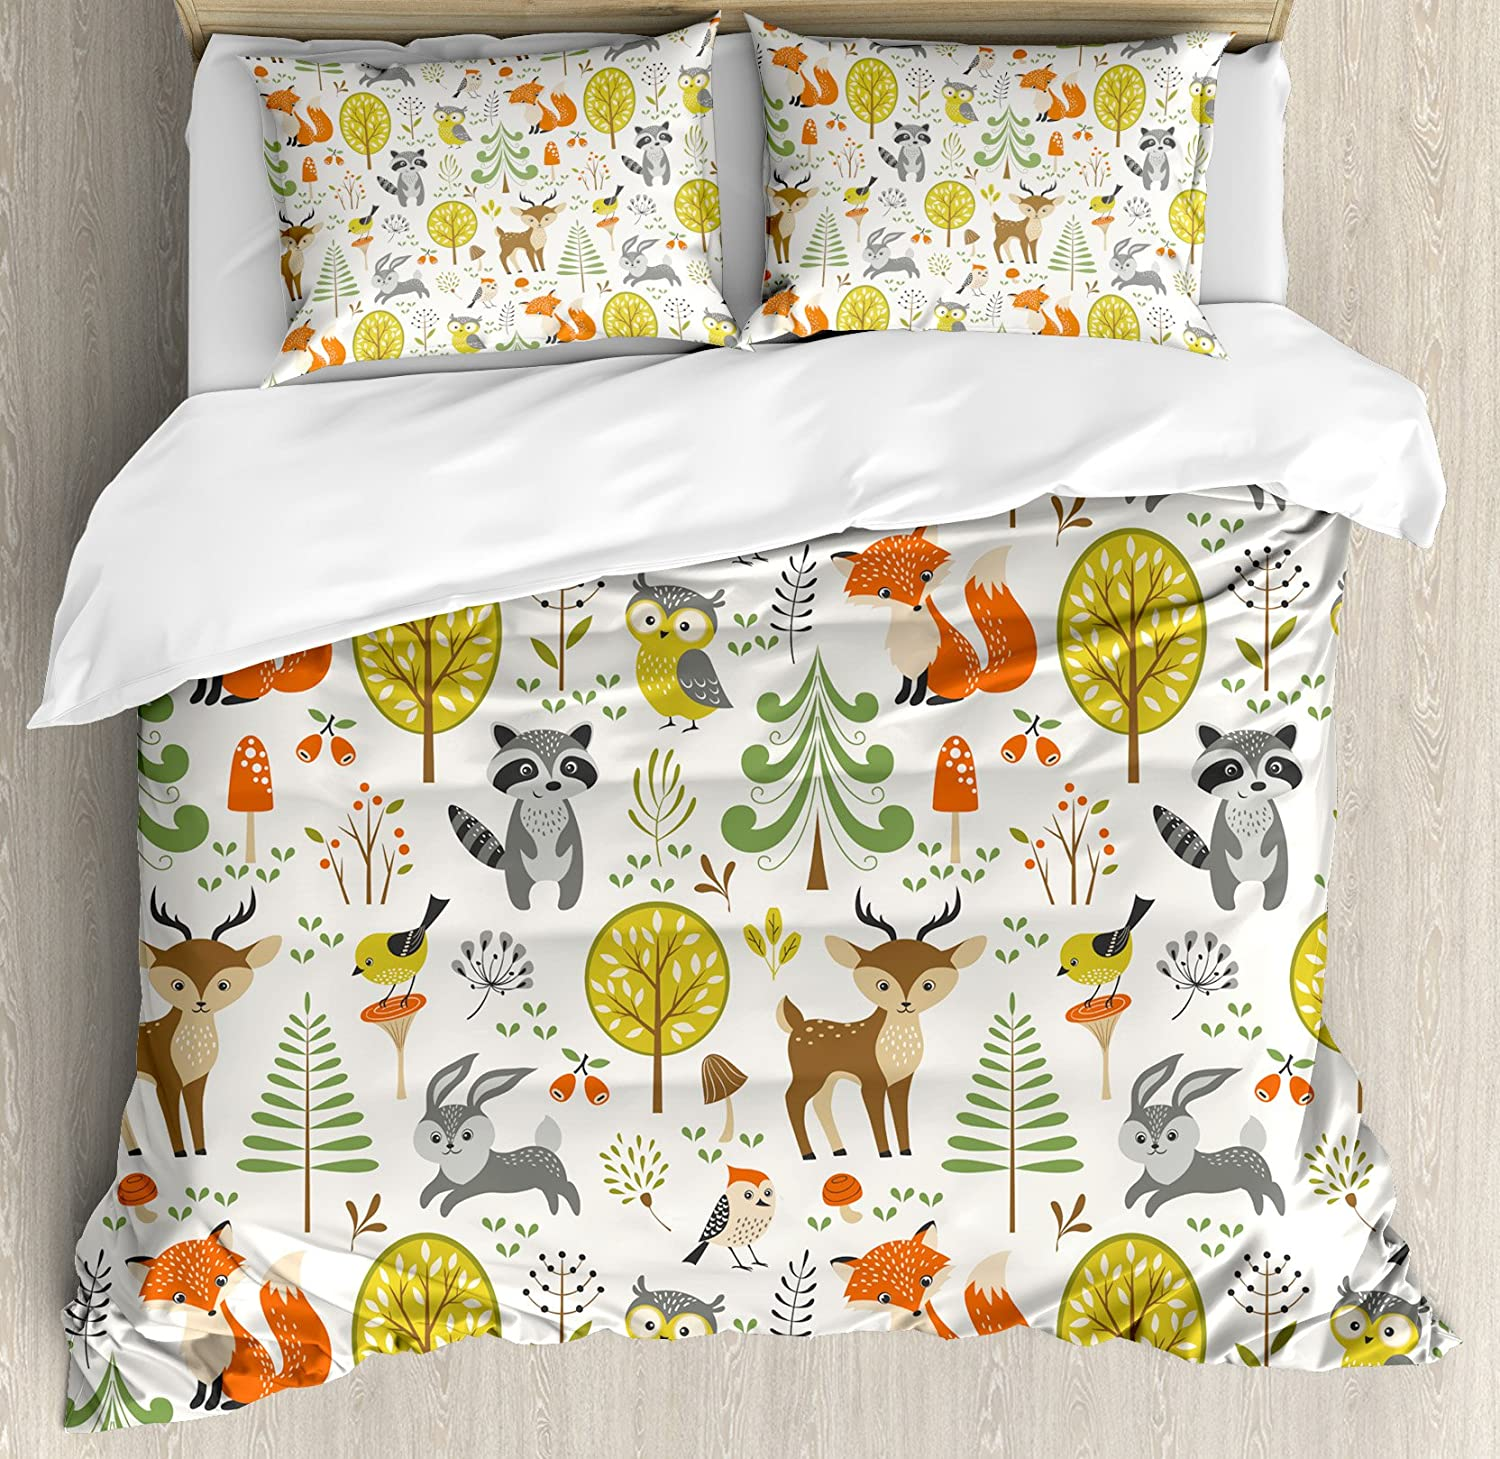 Mod Mushrooms Pillow Sham Illustrated Bugs Entomology Cotton Sateen Pillow Sham Bedding by Spoonflower Cute Forest by adehoidar